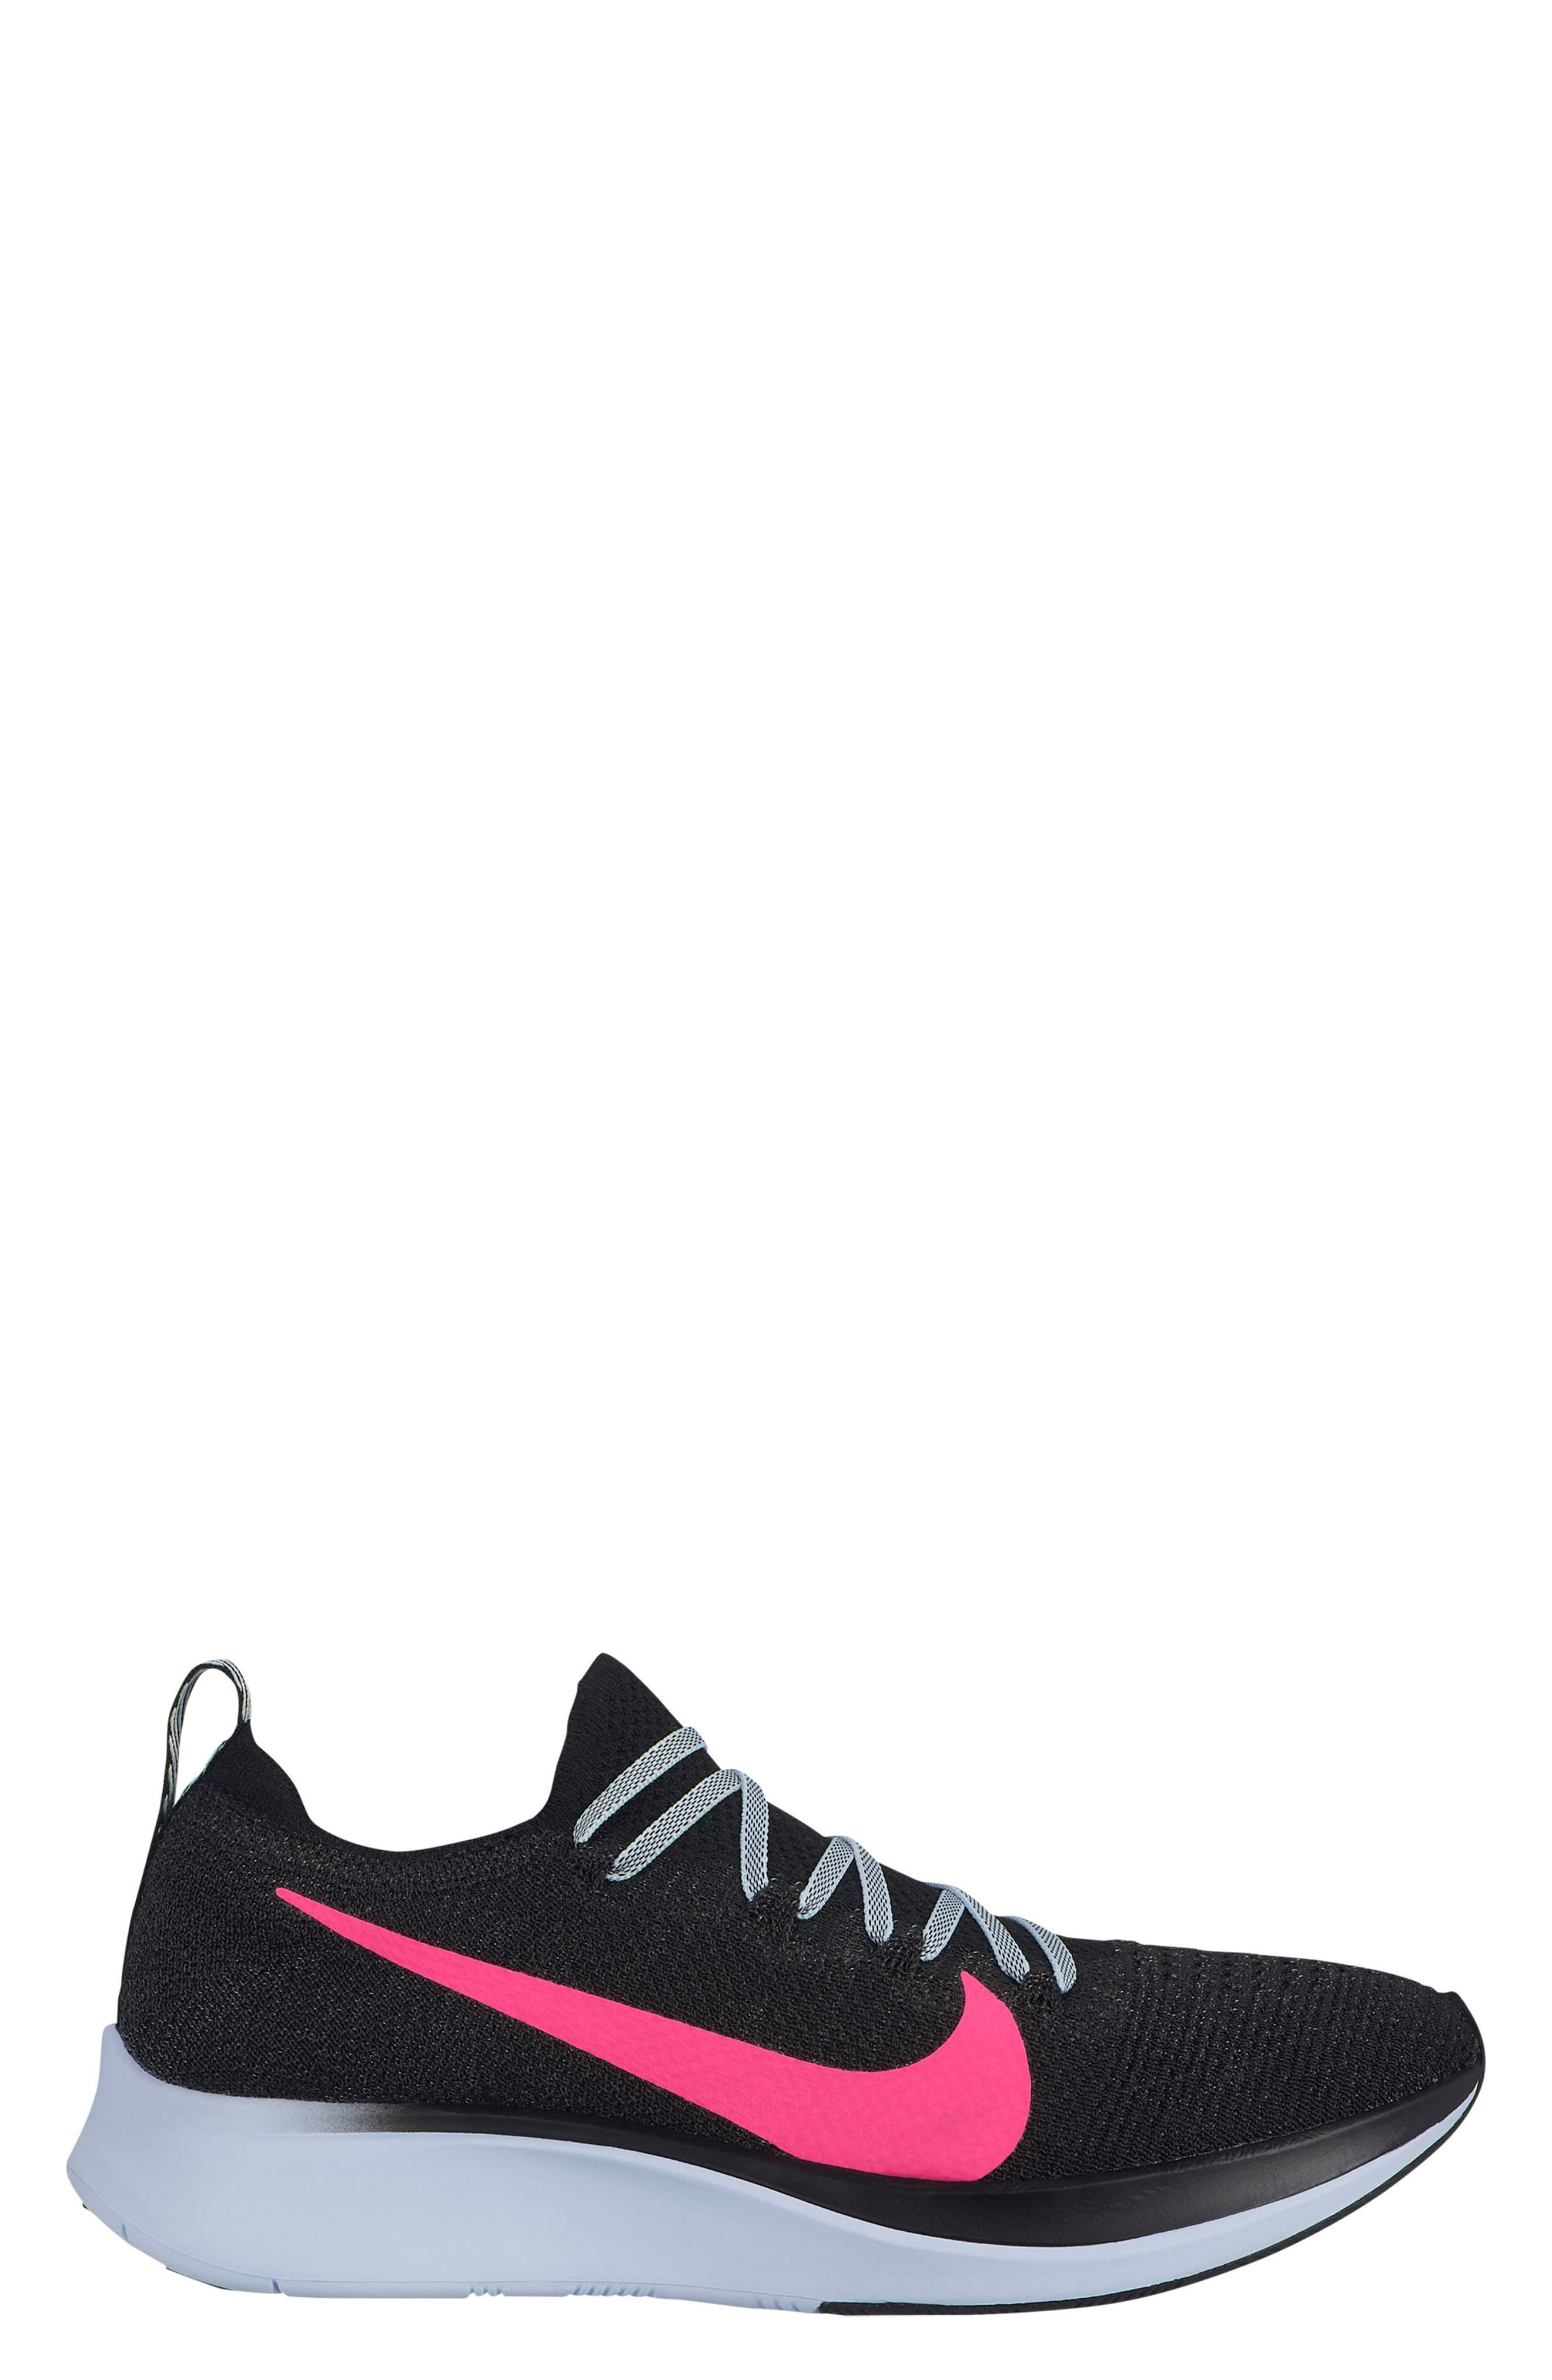 finest selection af1b3 38be6 Women s Nike New Arrivals  Clothing, Shoes   Beauty   Nordstrom